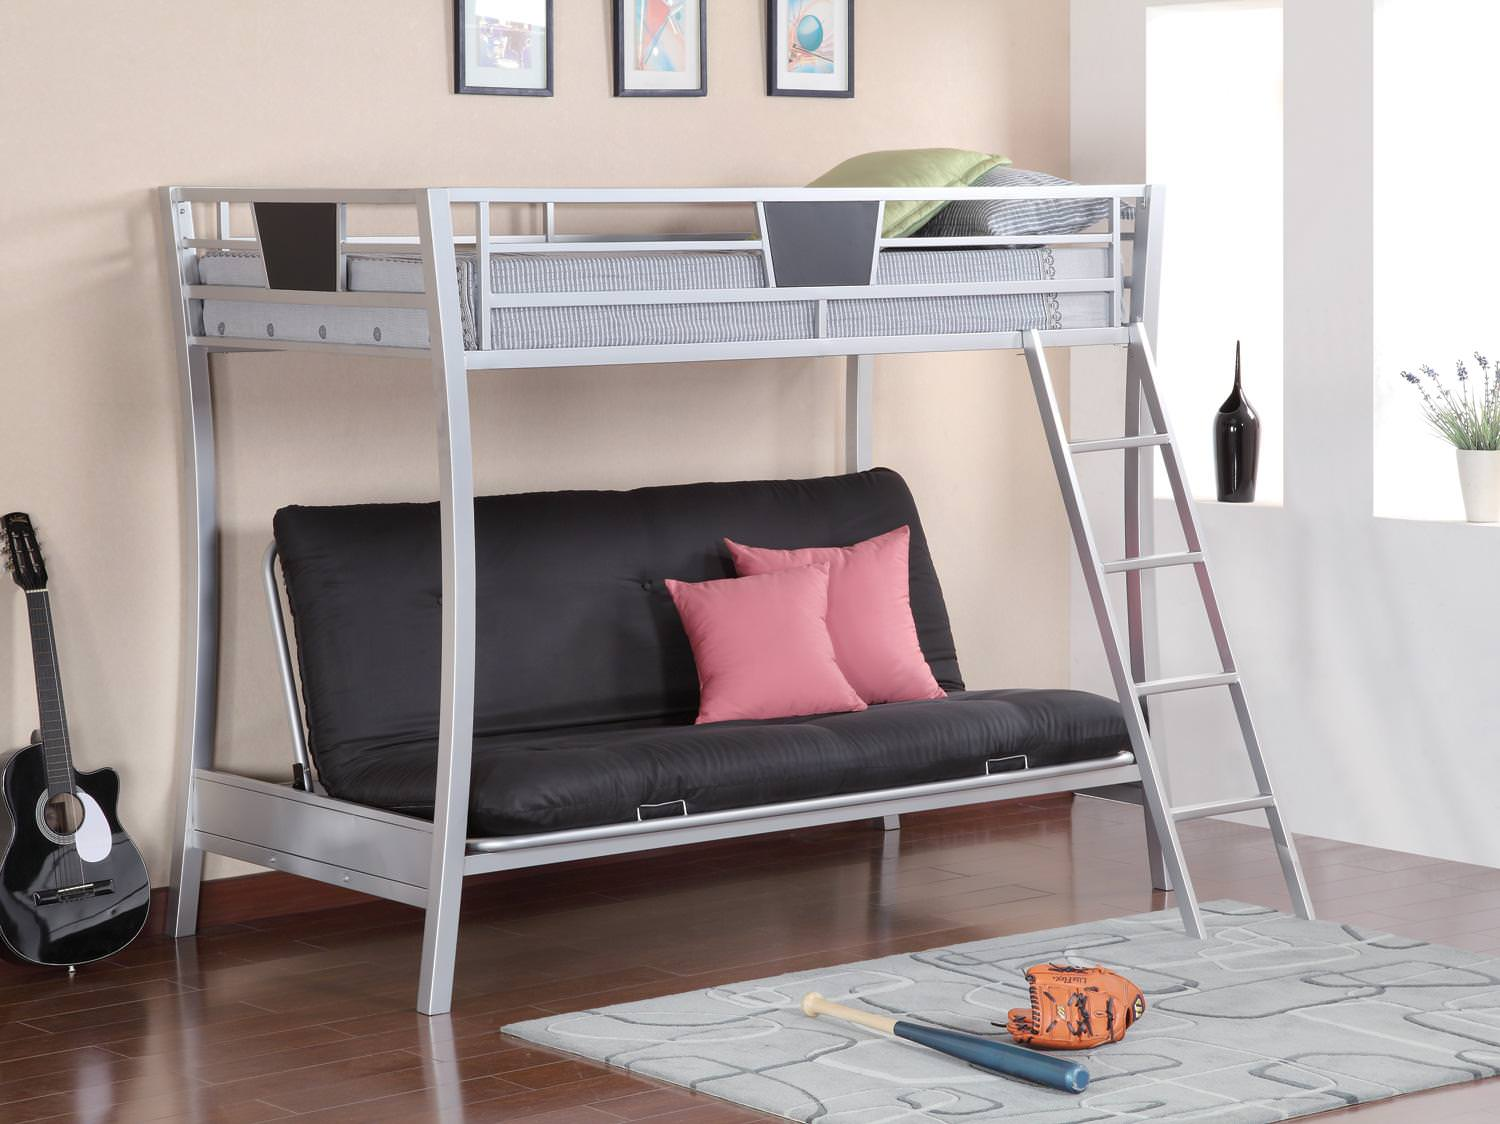 Incredible 460024 Twin Full Futon Metal Bunk Bed By Coaster Ibusinesslaw Wood Chair Design Ideas Ibusinesslaworg